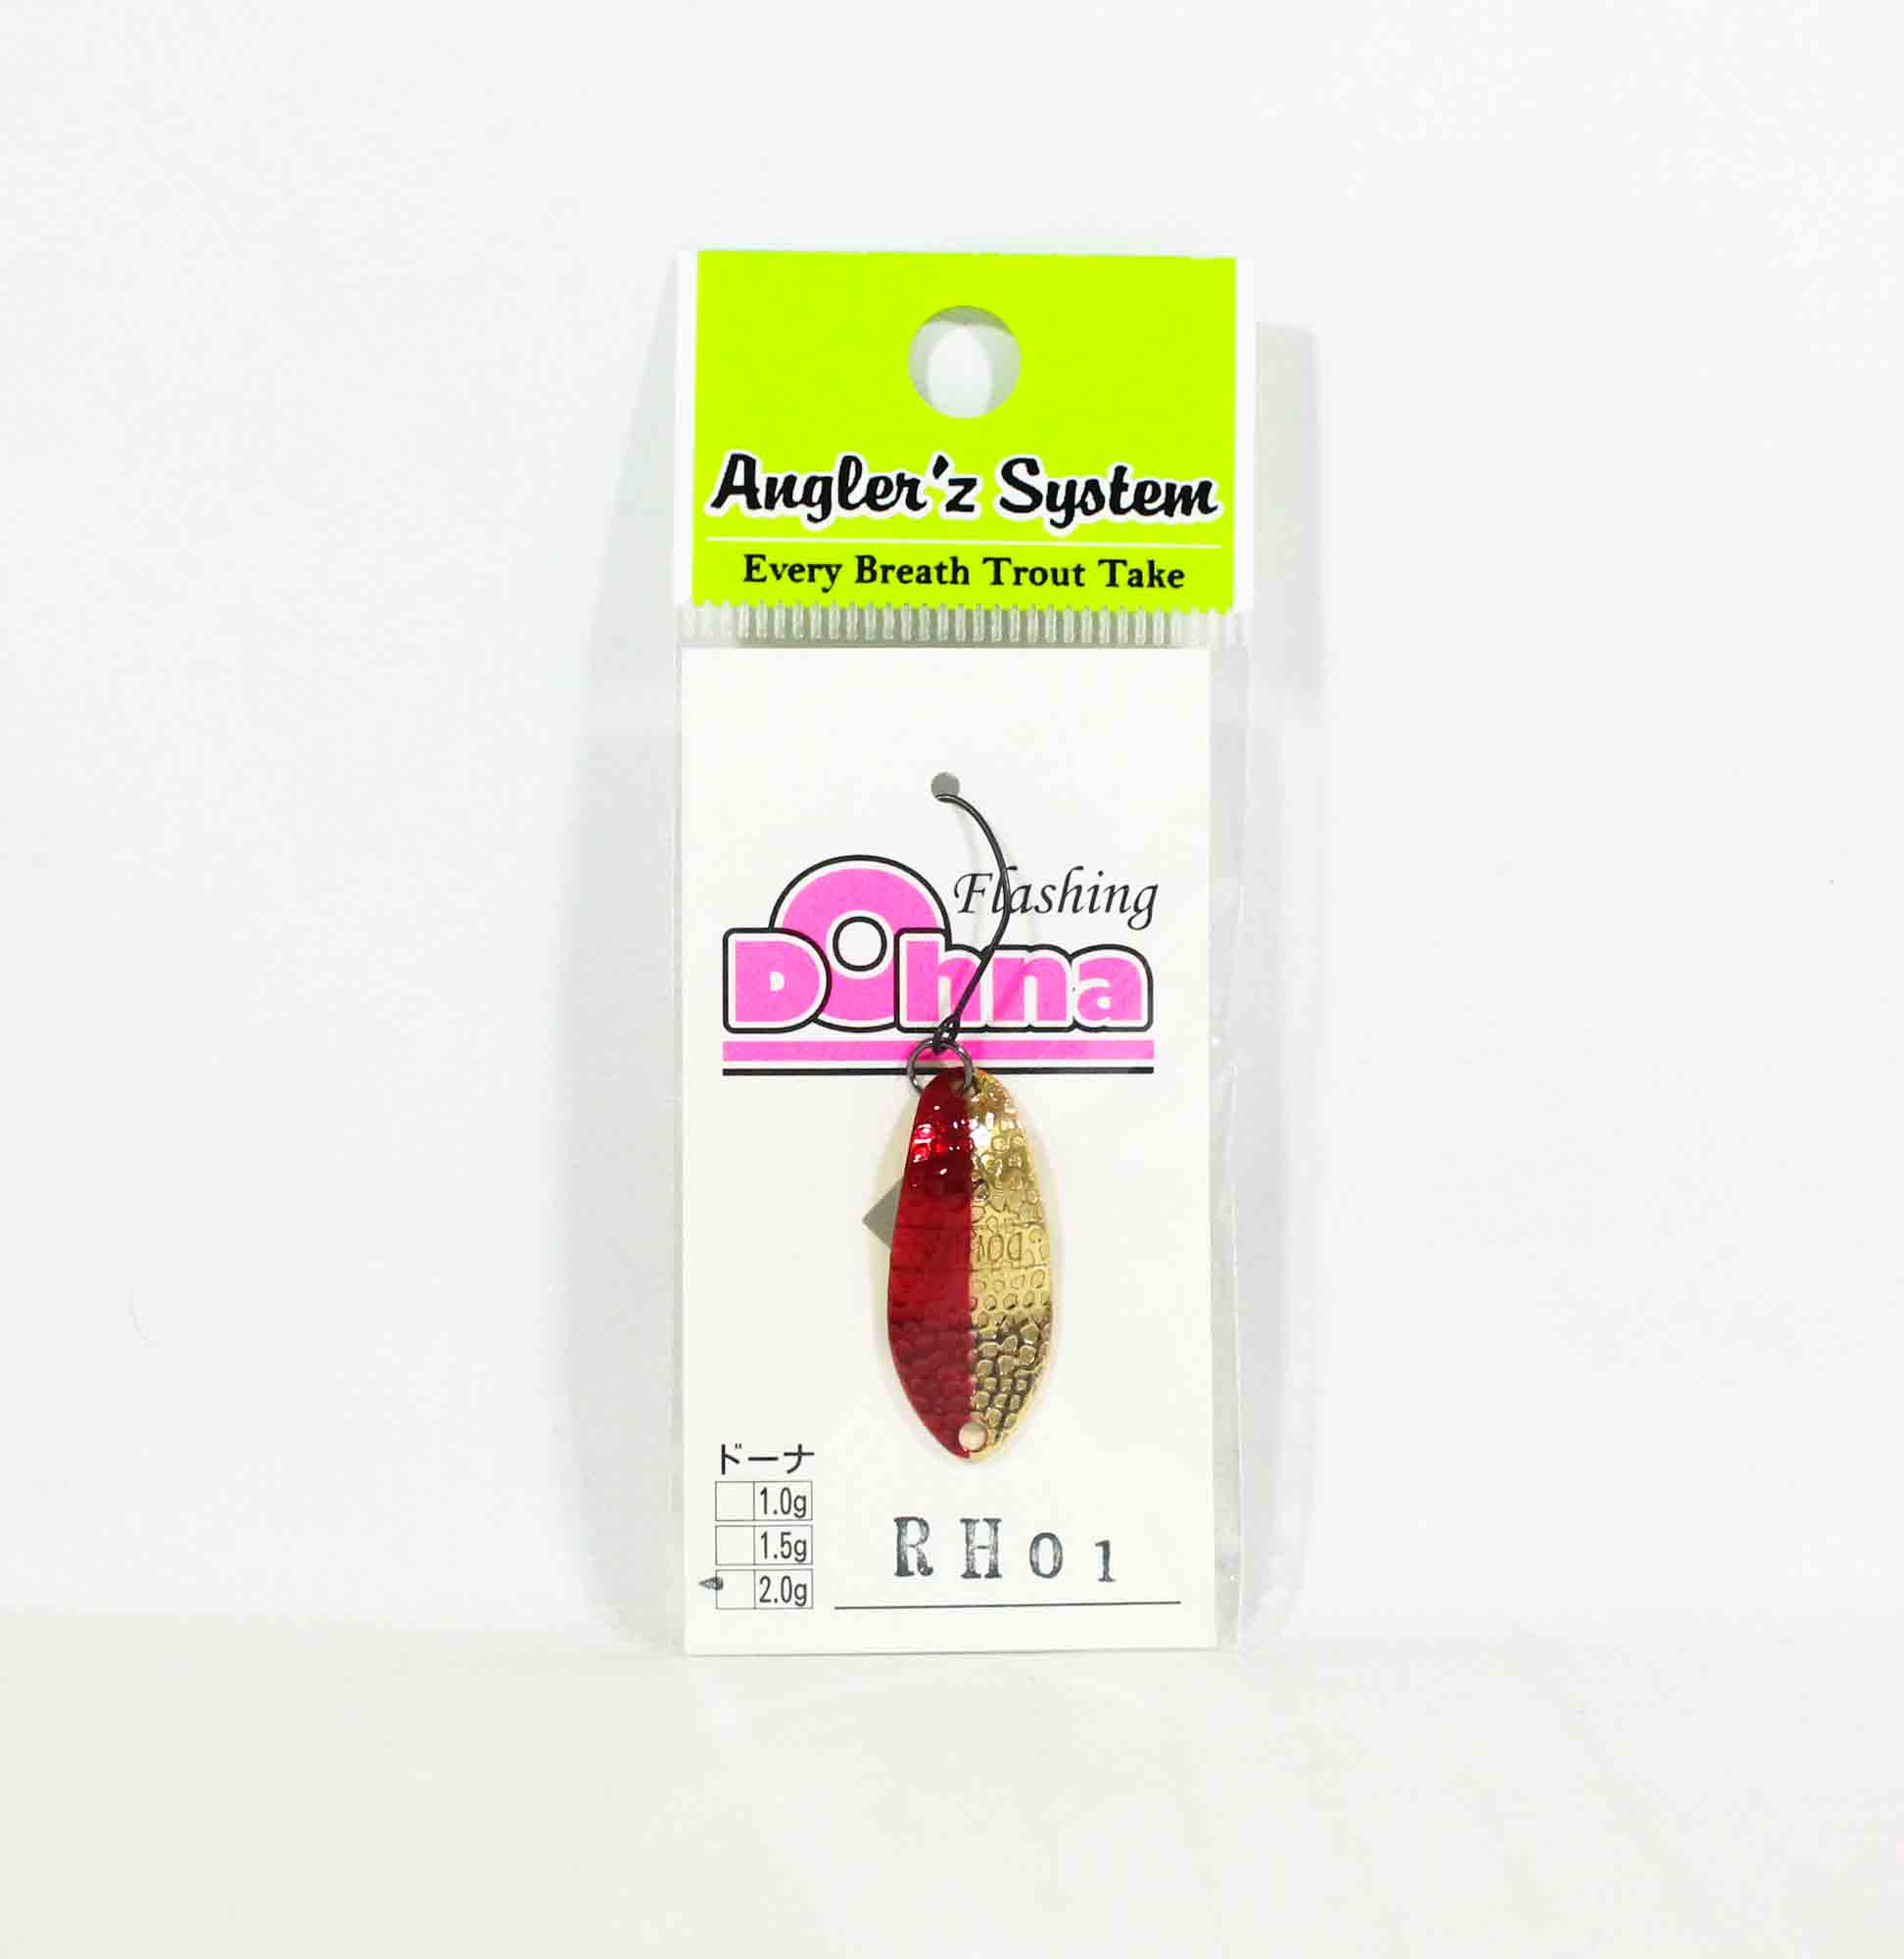 Anglers System Antem Dohna 2.0 grams Spoon Sinking Lure RH01 (5750)